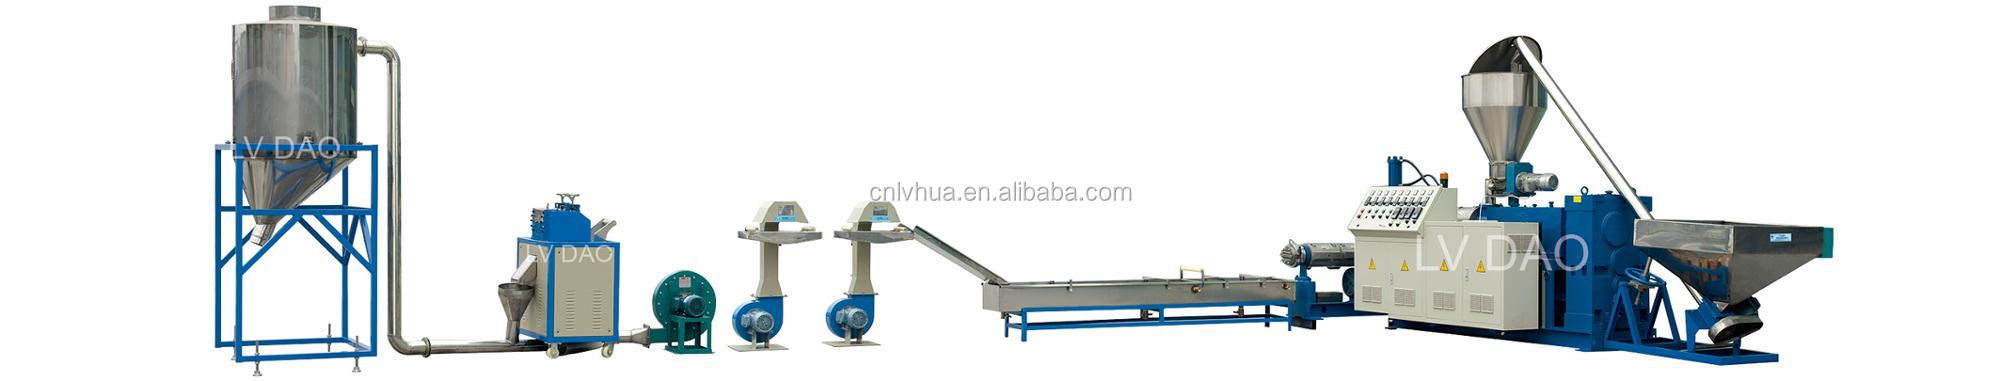 PVC conical twin screw extrusion and pelletizing machine line